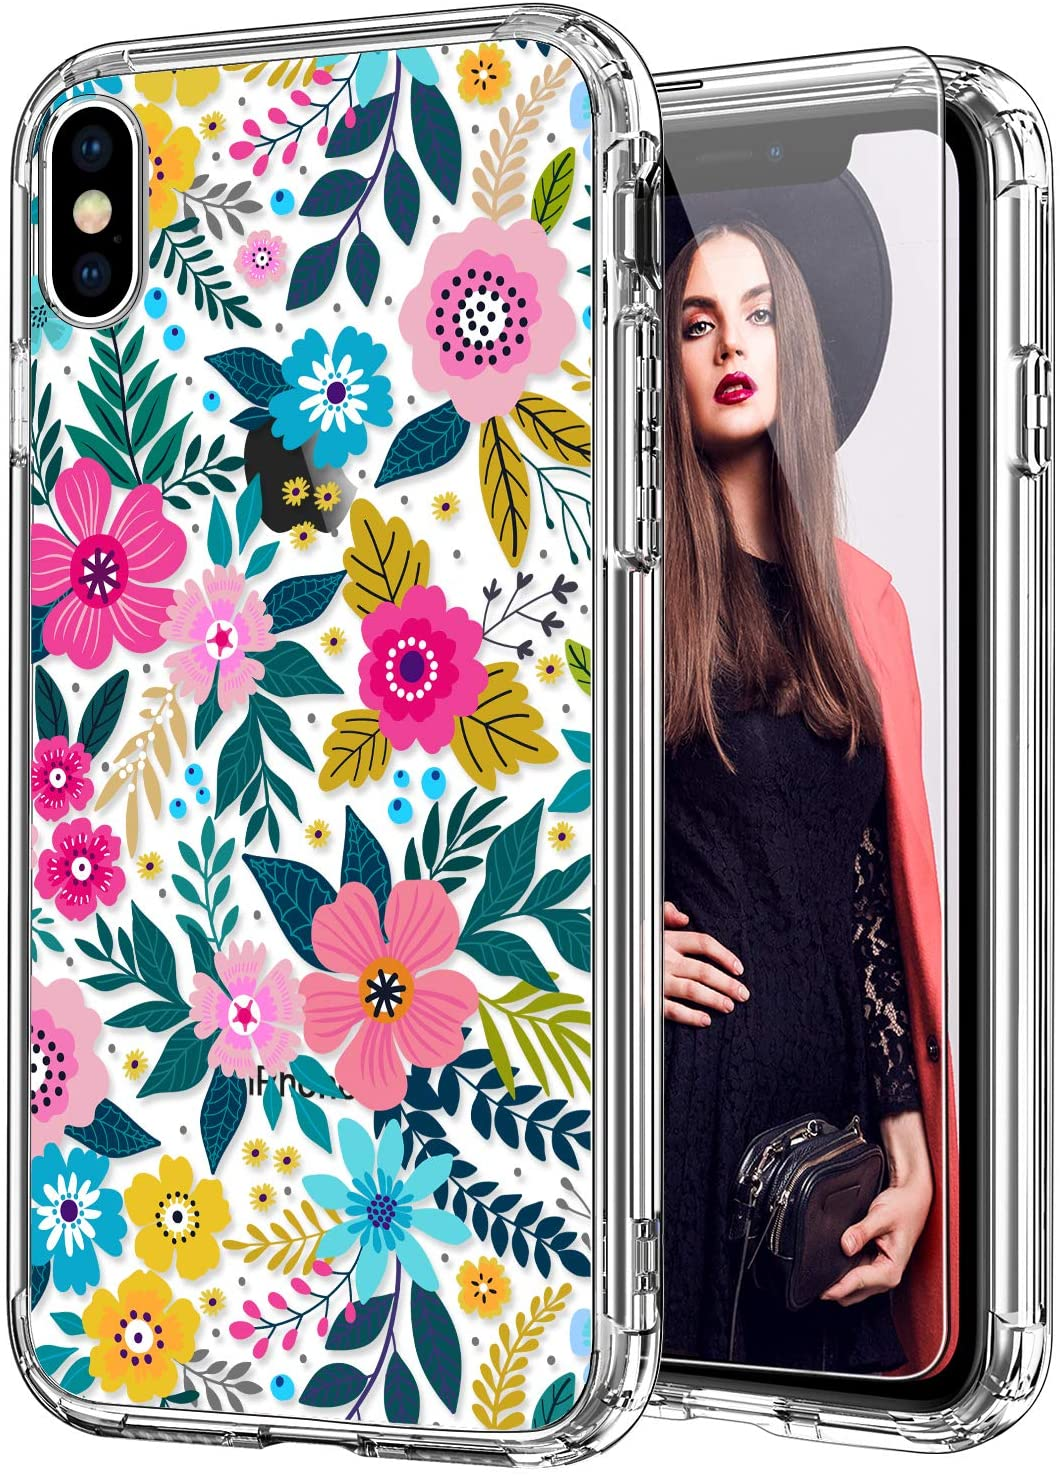 ICEDIO iPhone Xs Max Case with Screen Protector,Clear with Colorful Blooming Floral Flower Patterns for Girls Women,Shockproof Slim Fit TPU Cover Protective Phone Case for iPhone Xs Max